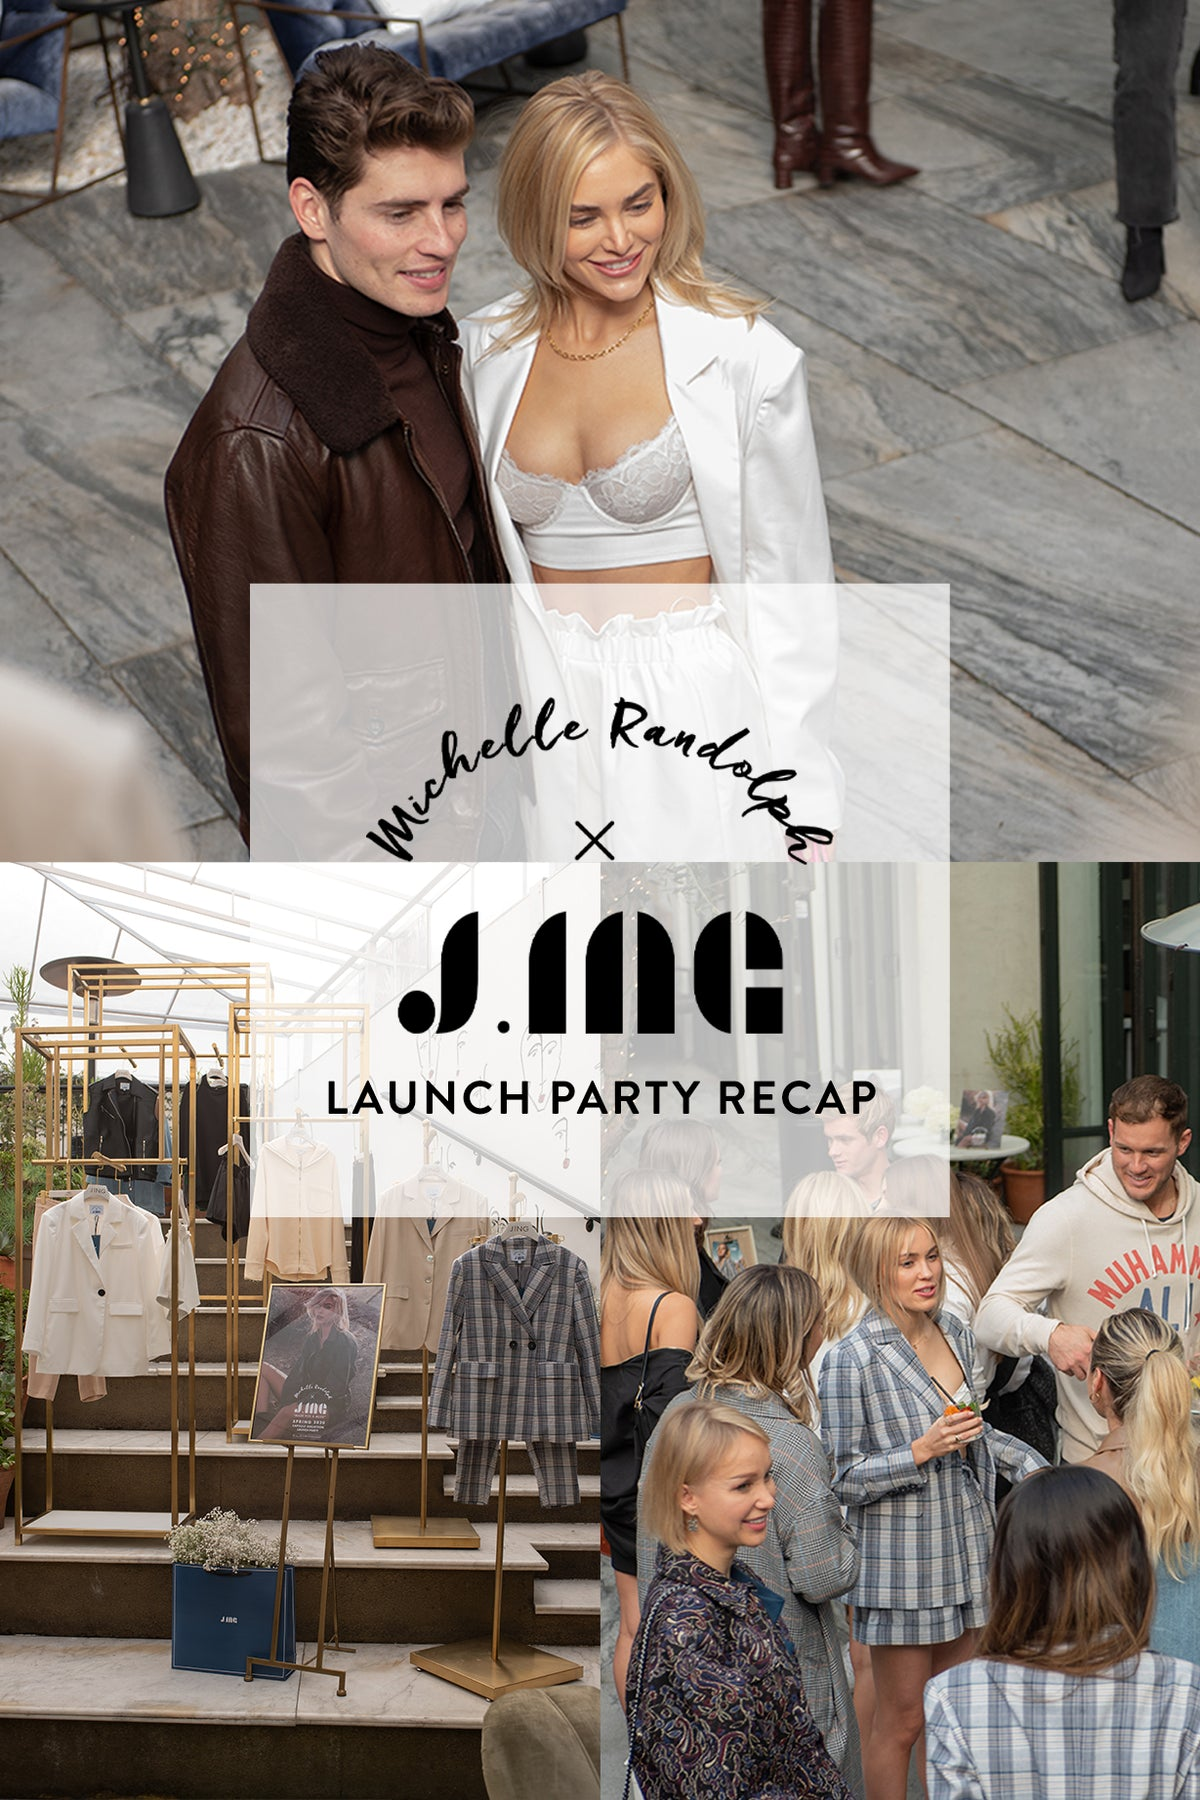 Michelle Randolph X J.ING's Launch Party Recap!